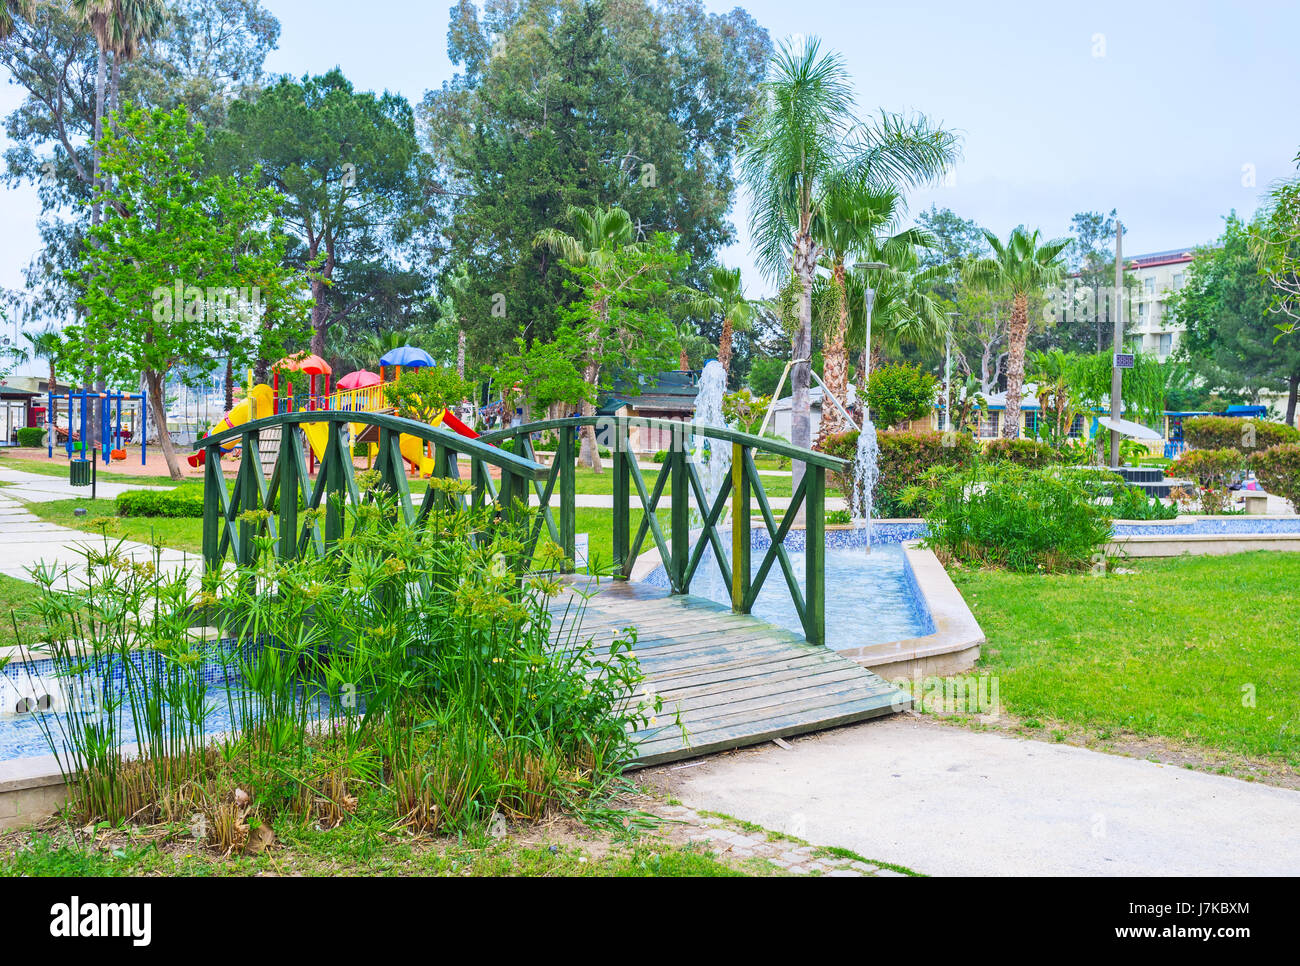 The small wooden bridge over the pond with fountains in Olbia park of Kemer resort, Turkey. - Stock Image